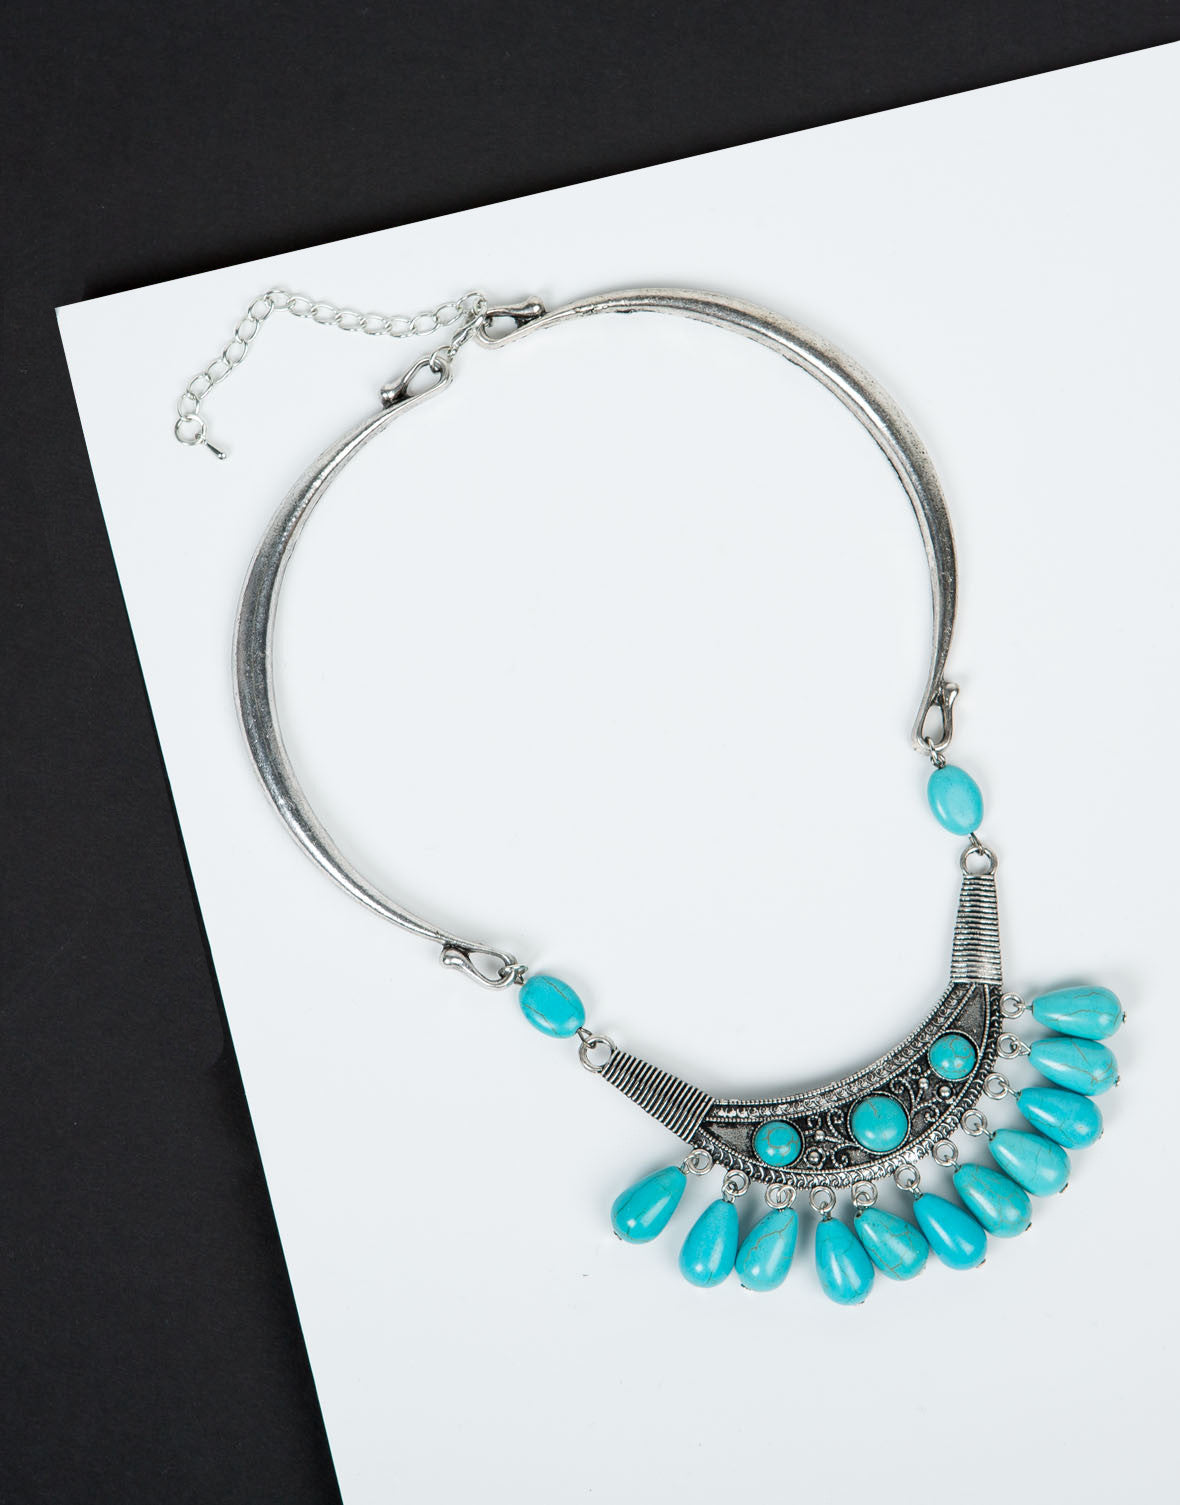 Front View of Chandelier Turquoise Collar Necklace